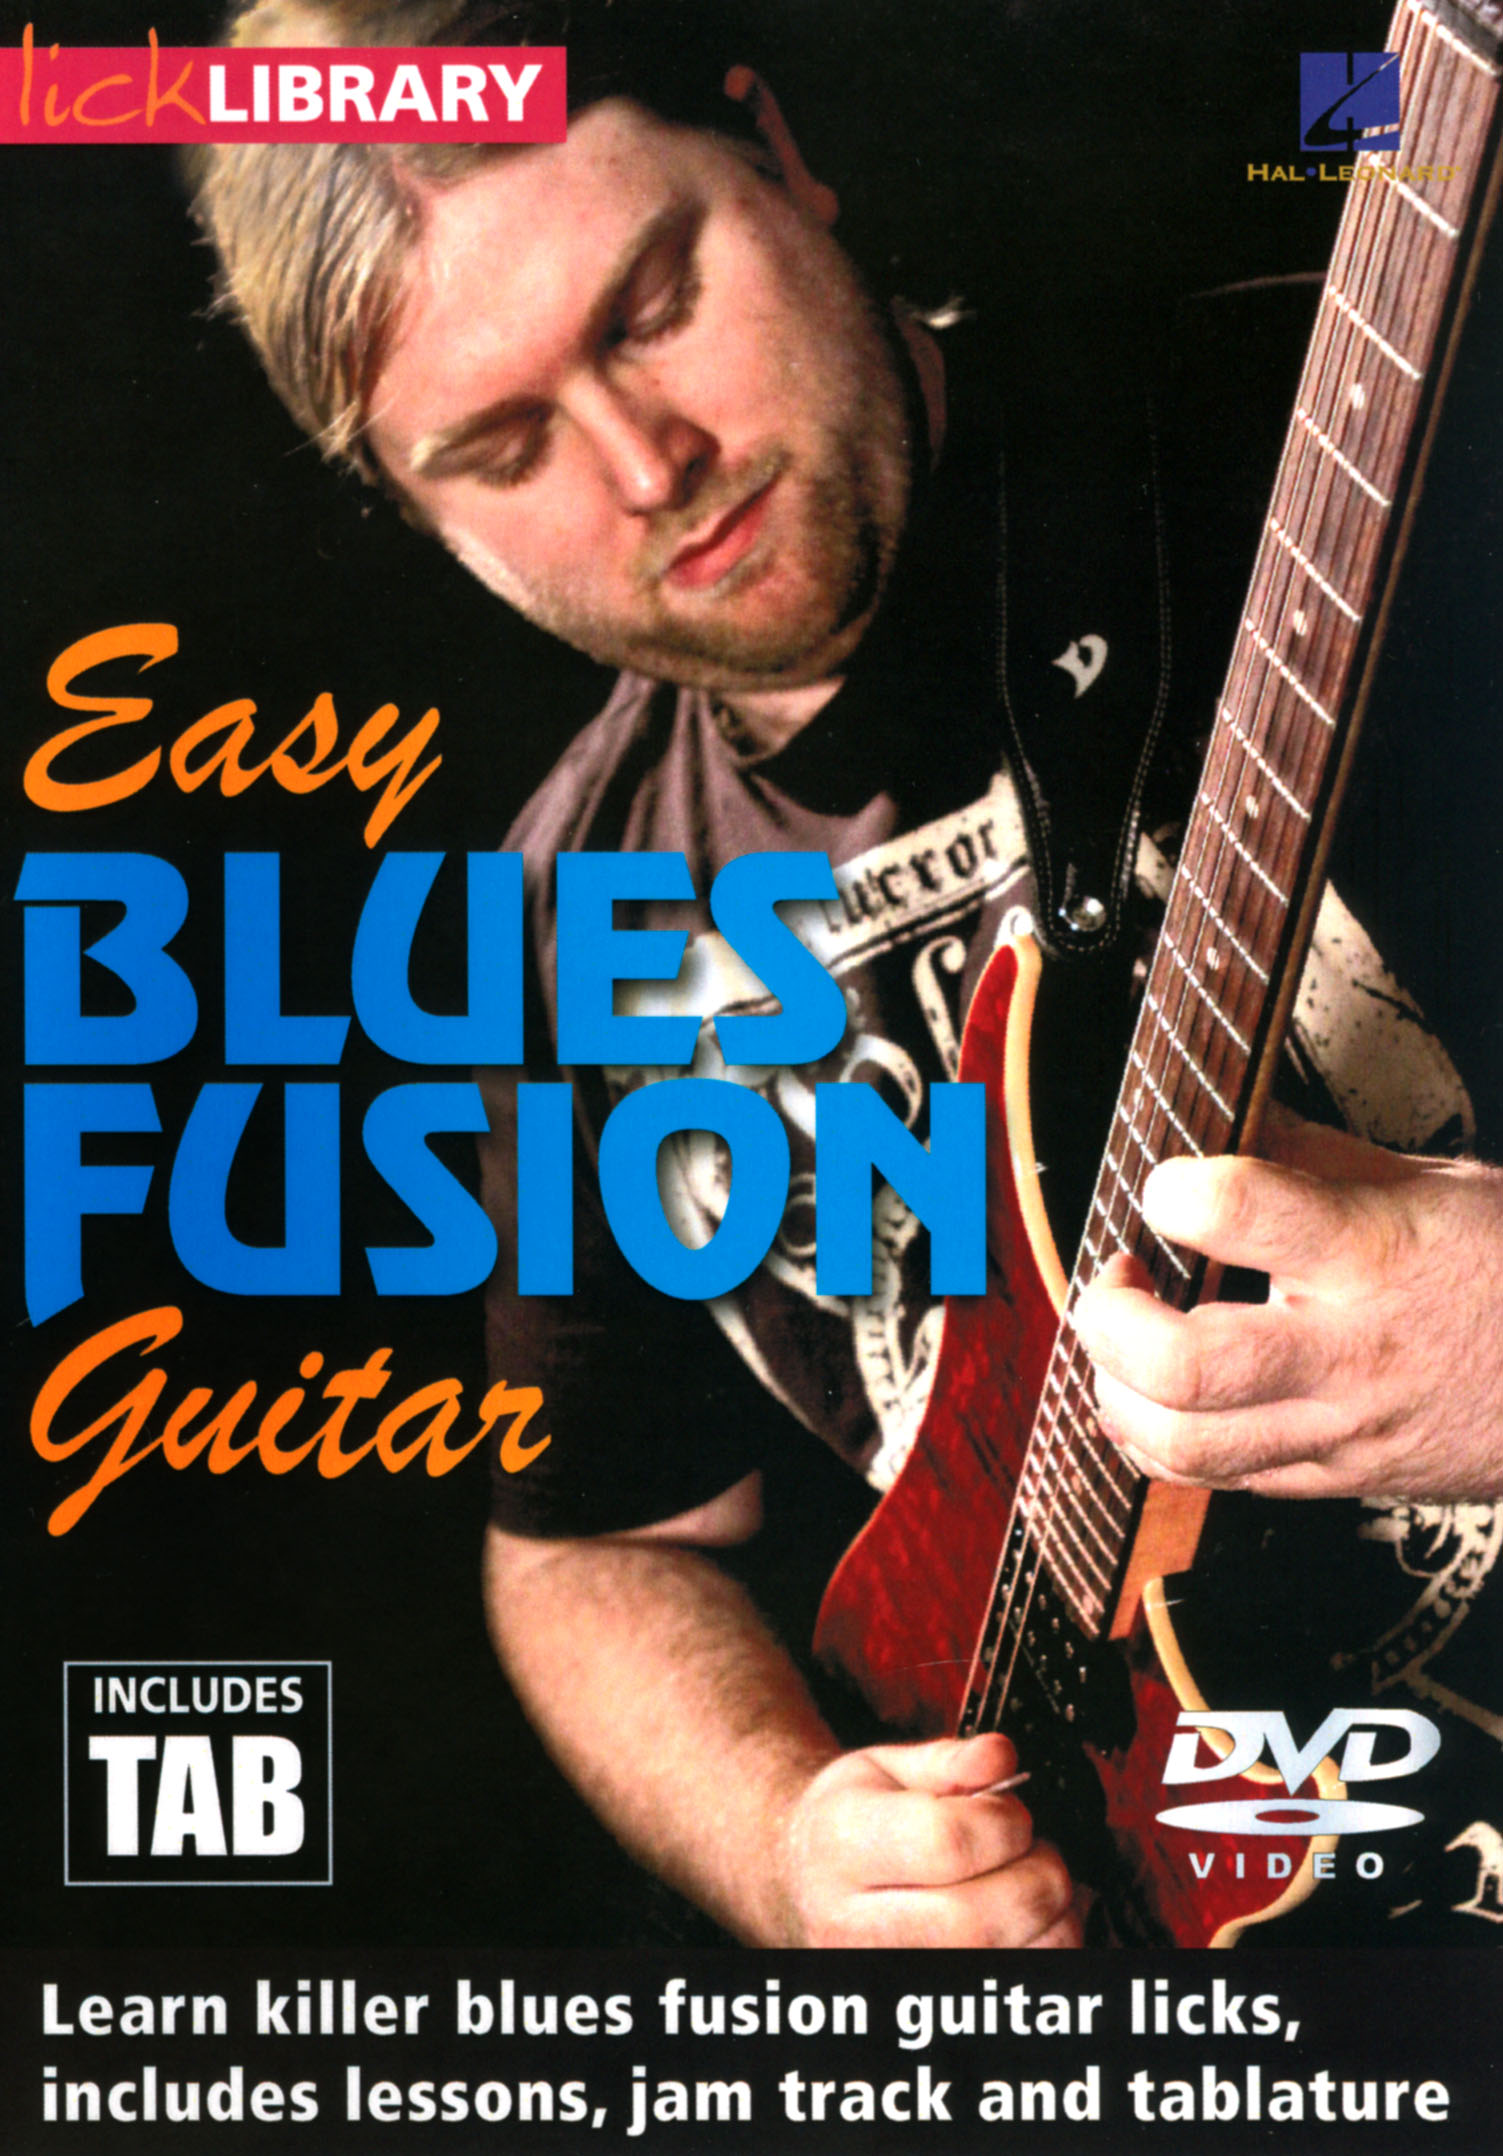 Lick Library: Easy Blues Fusion Guitar